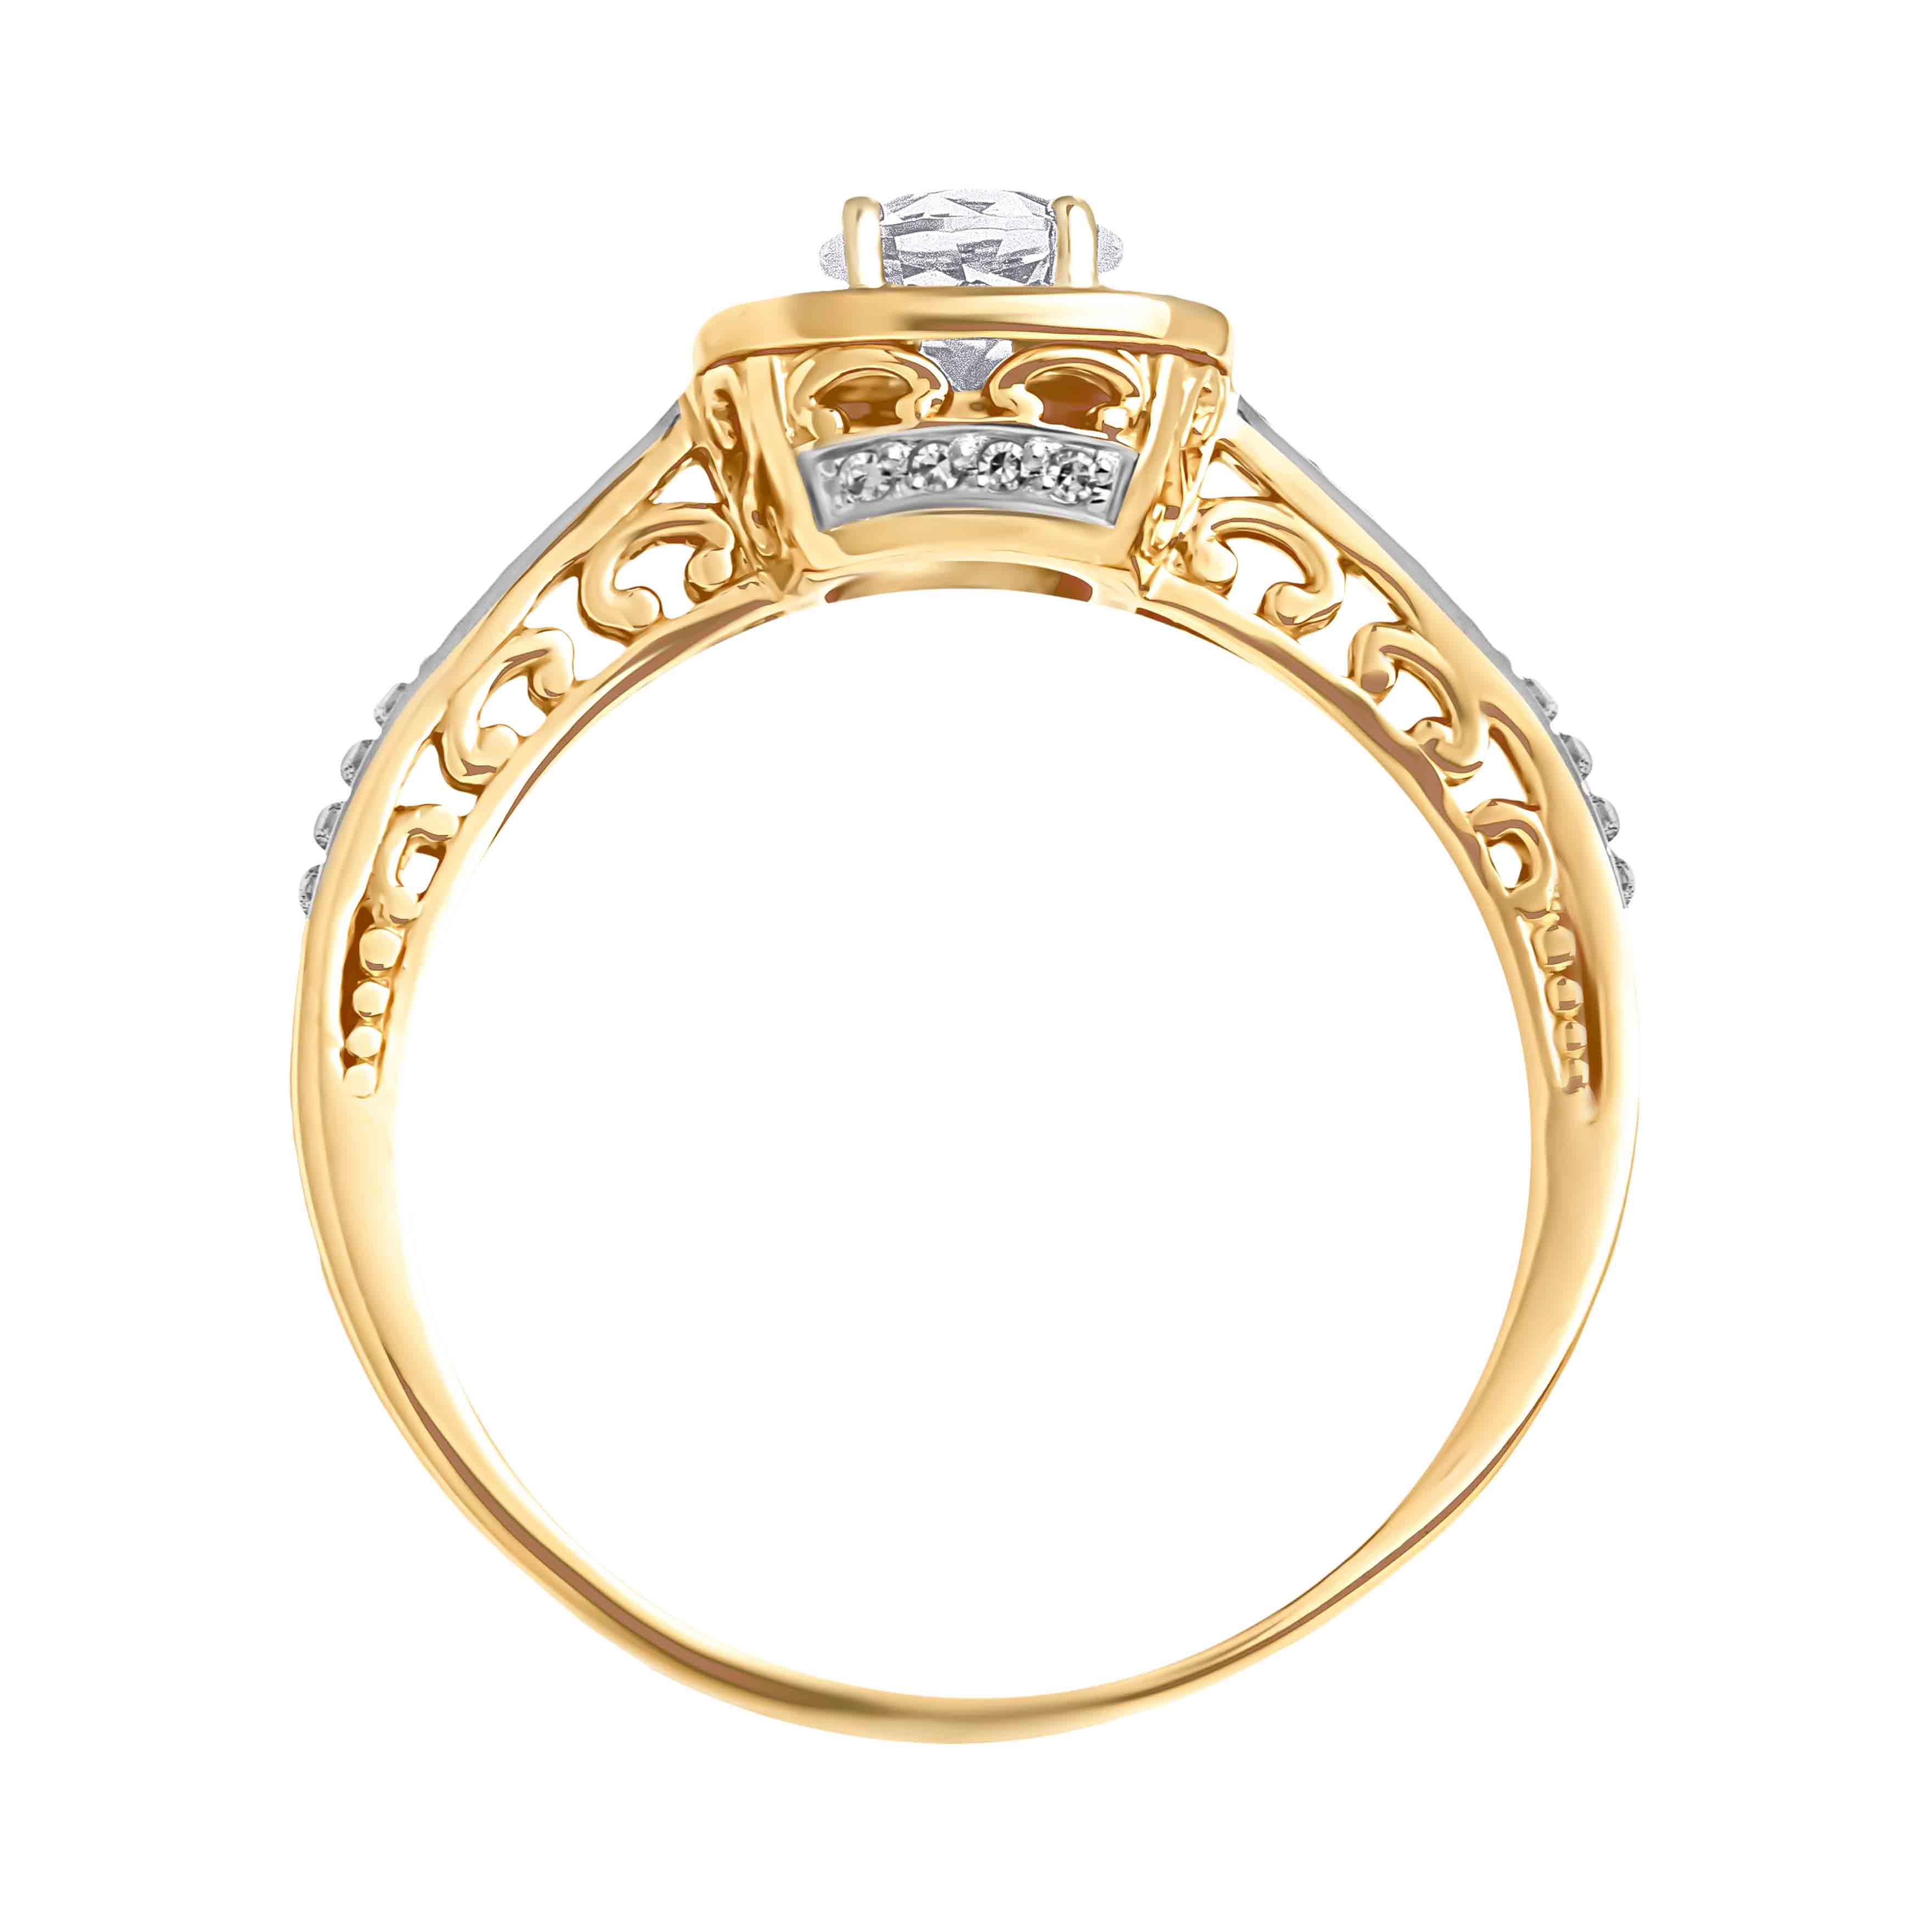 14kt Yellow Gold Scrollwork Ring with Swarovski Topaz and Diamonds. View 3